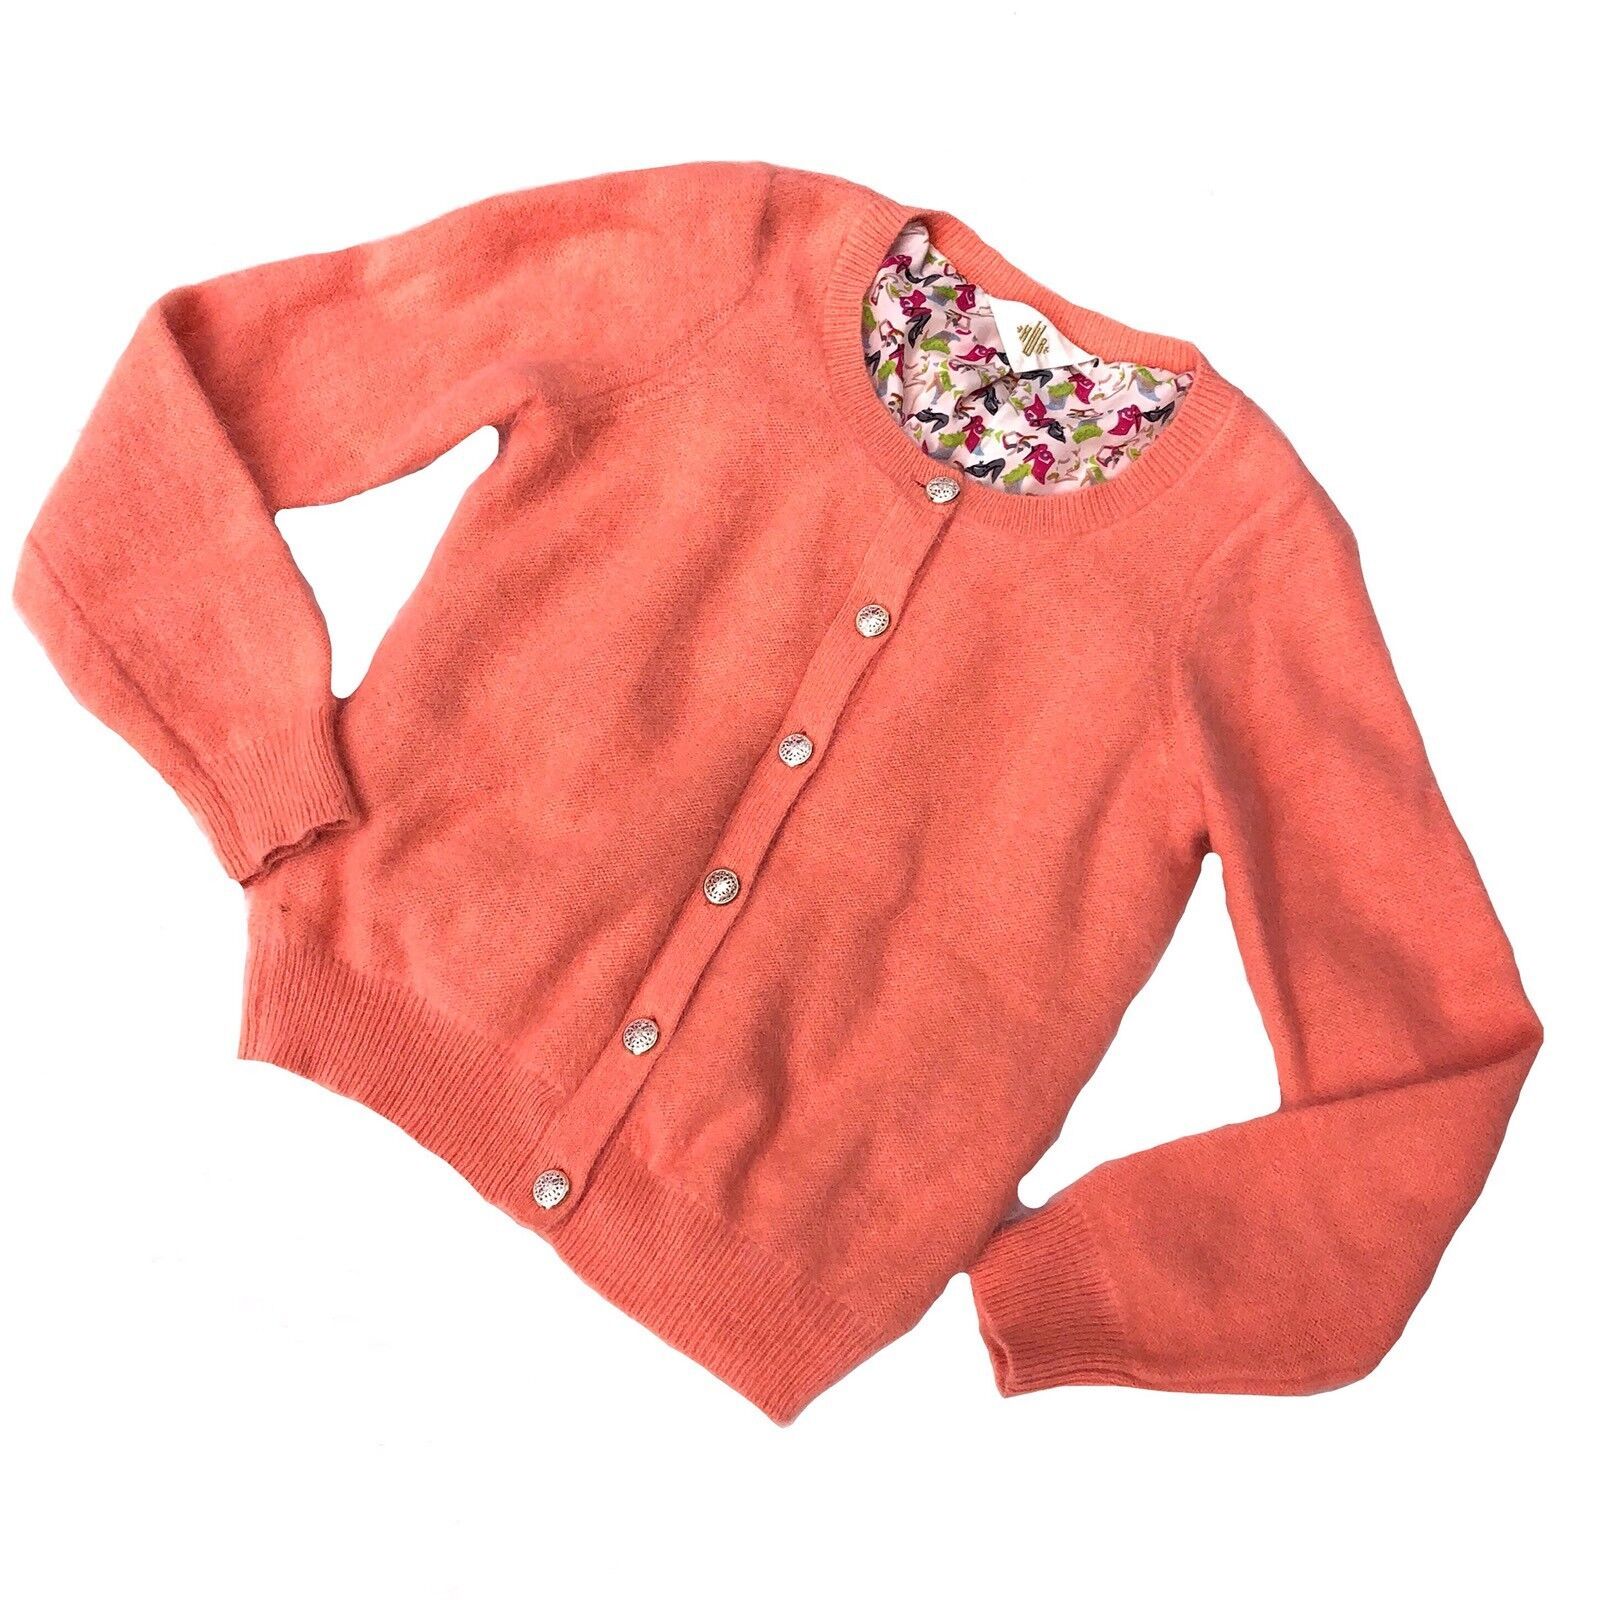 19da357a6 Anthropologie S Sweater Cardigan Angora orange Sz Womens monogram ...